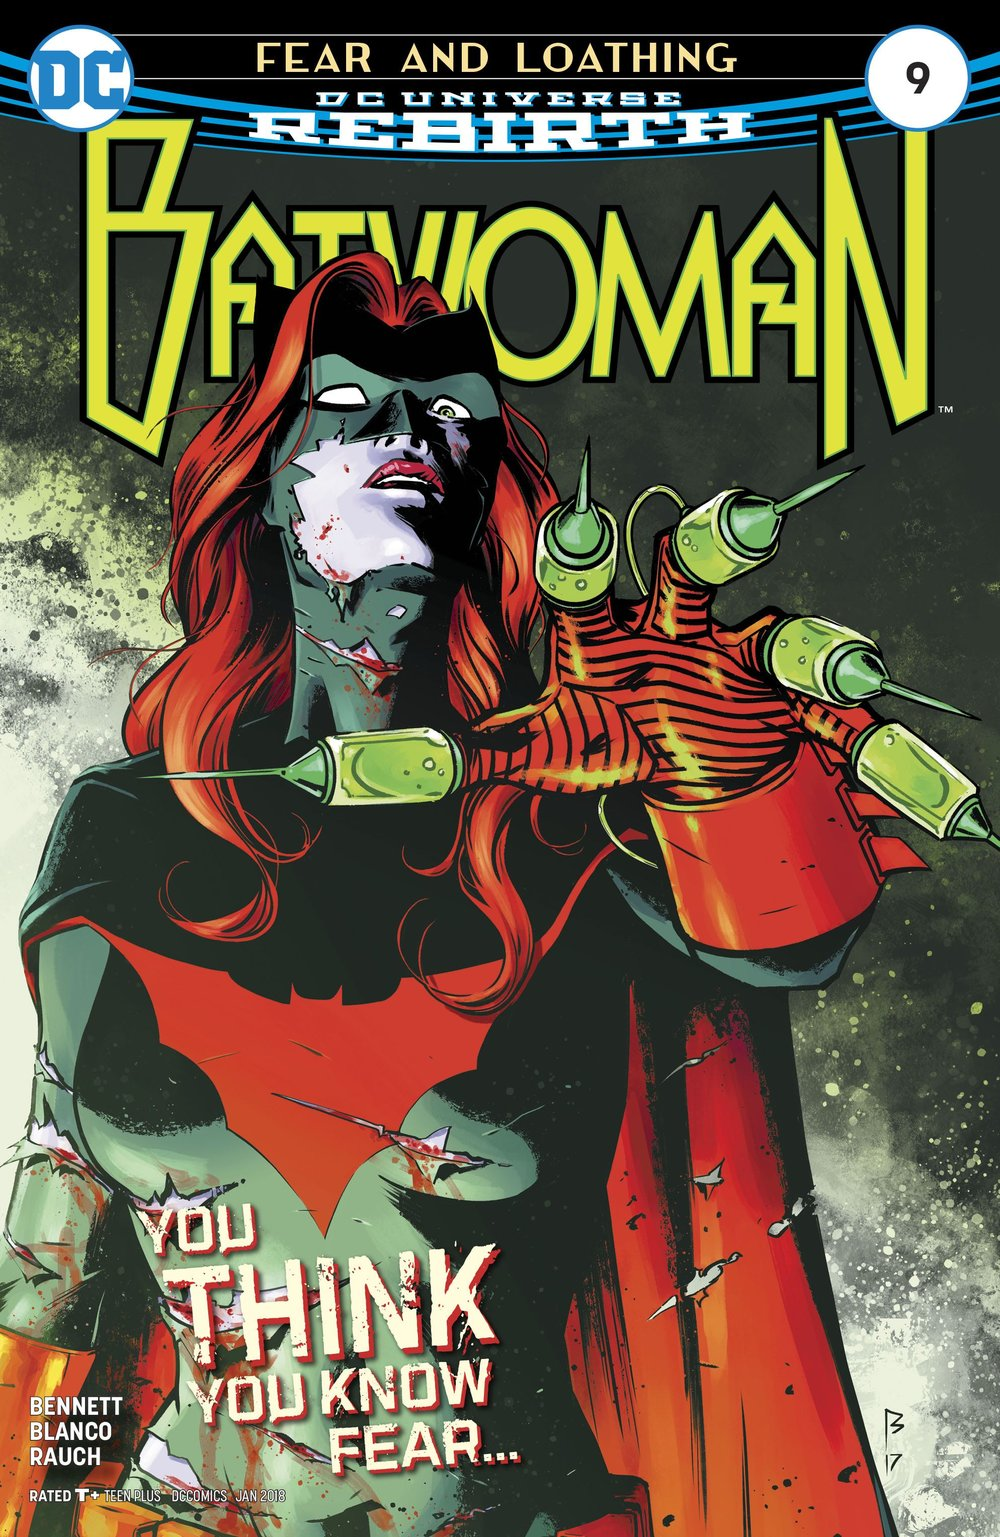 Episode 11 Cover of the Week! - (DC) Batwoman #9Cover by Fernando BlancoWritten by Marguerite BennettIllustrated by Fernando BlancoDid the Content Match the Drapes? - UNR